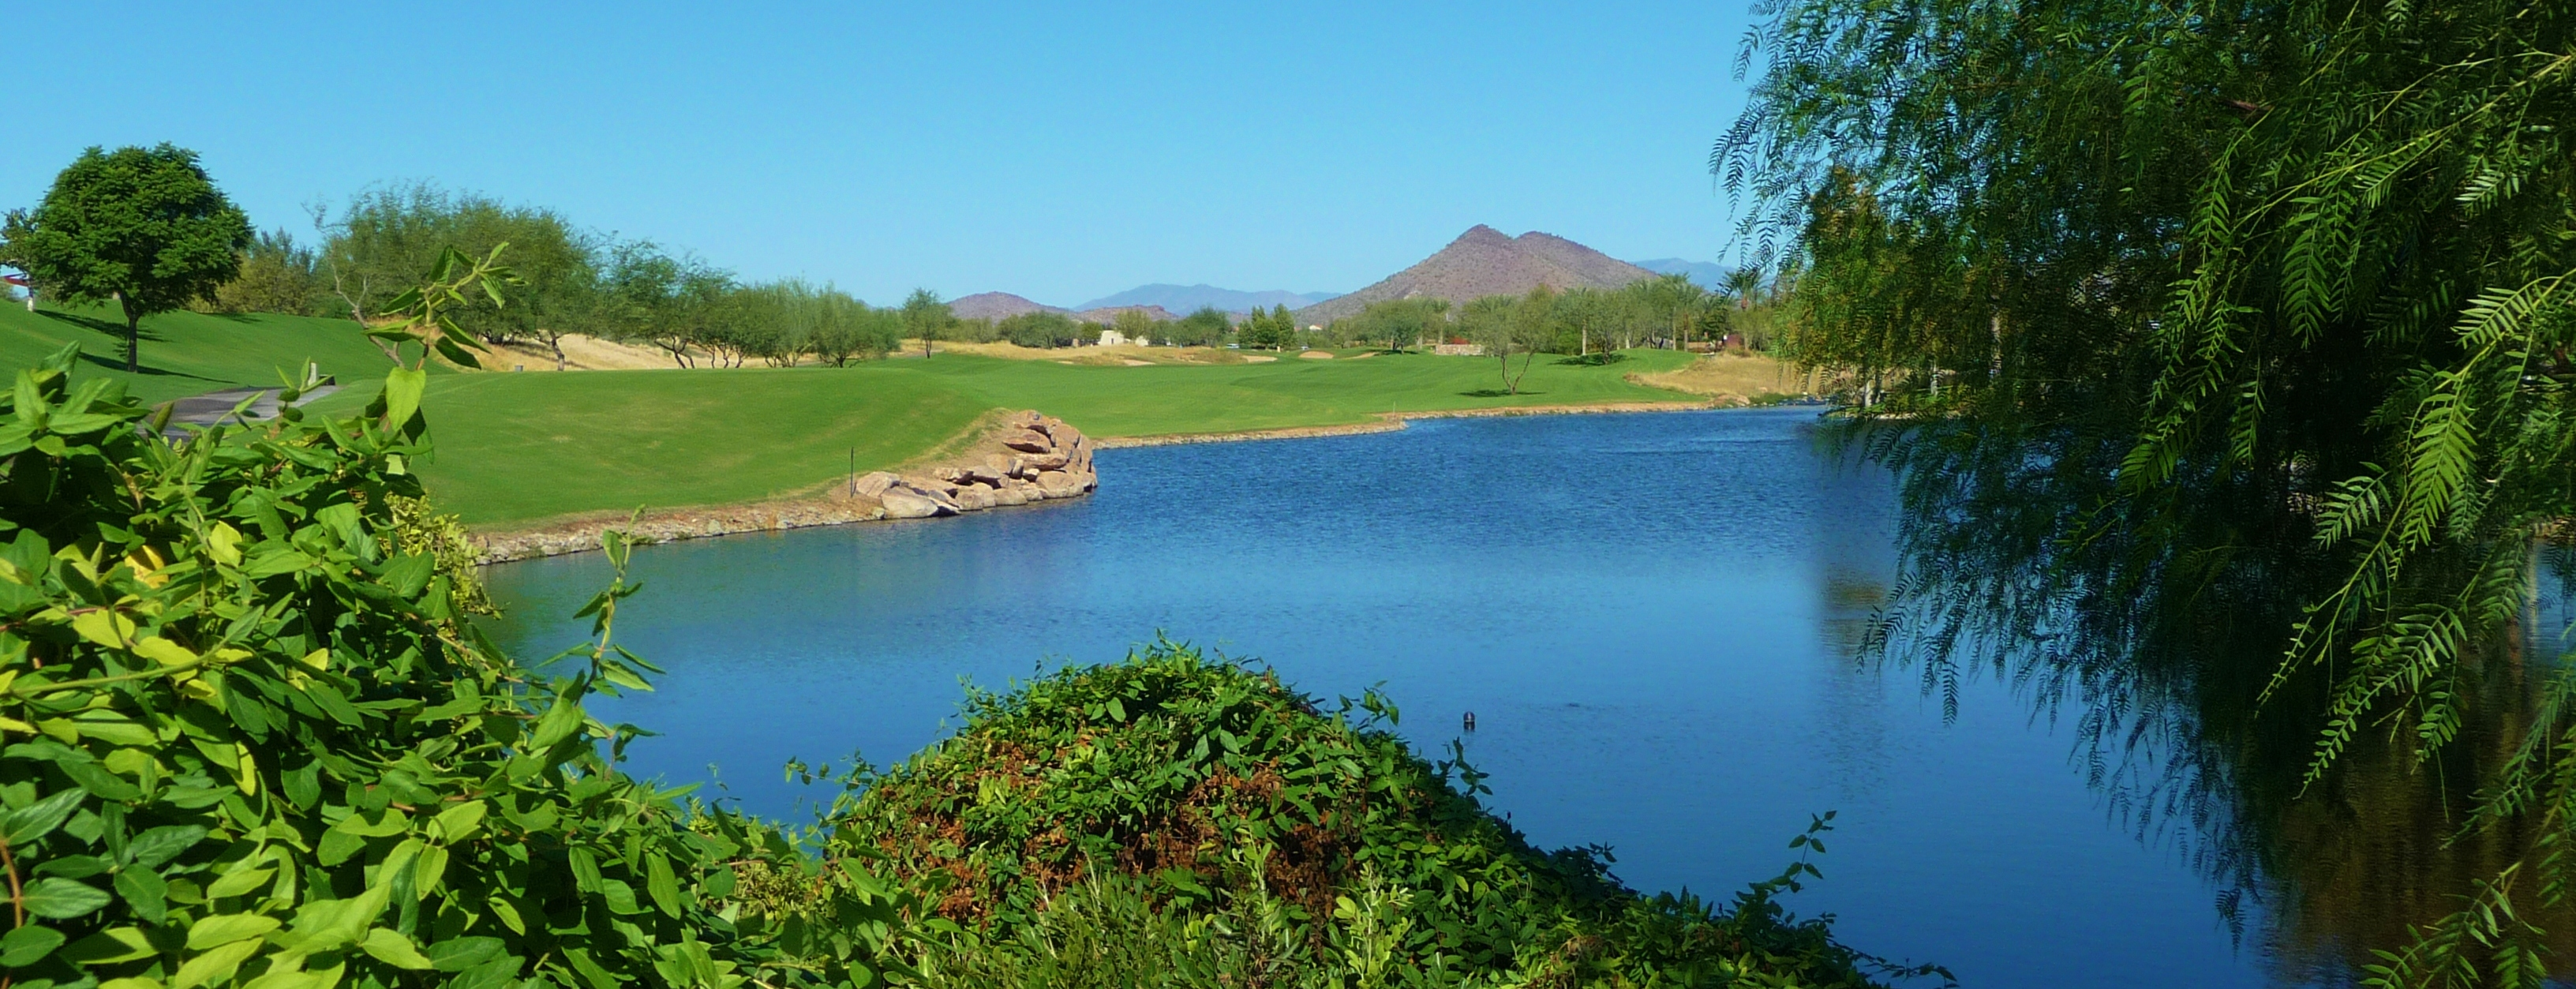 Friedman Realty Associates, Trilogy At Vistancia, View of the 18th Fairway